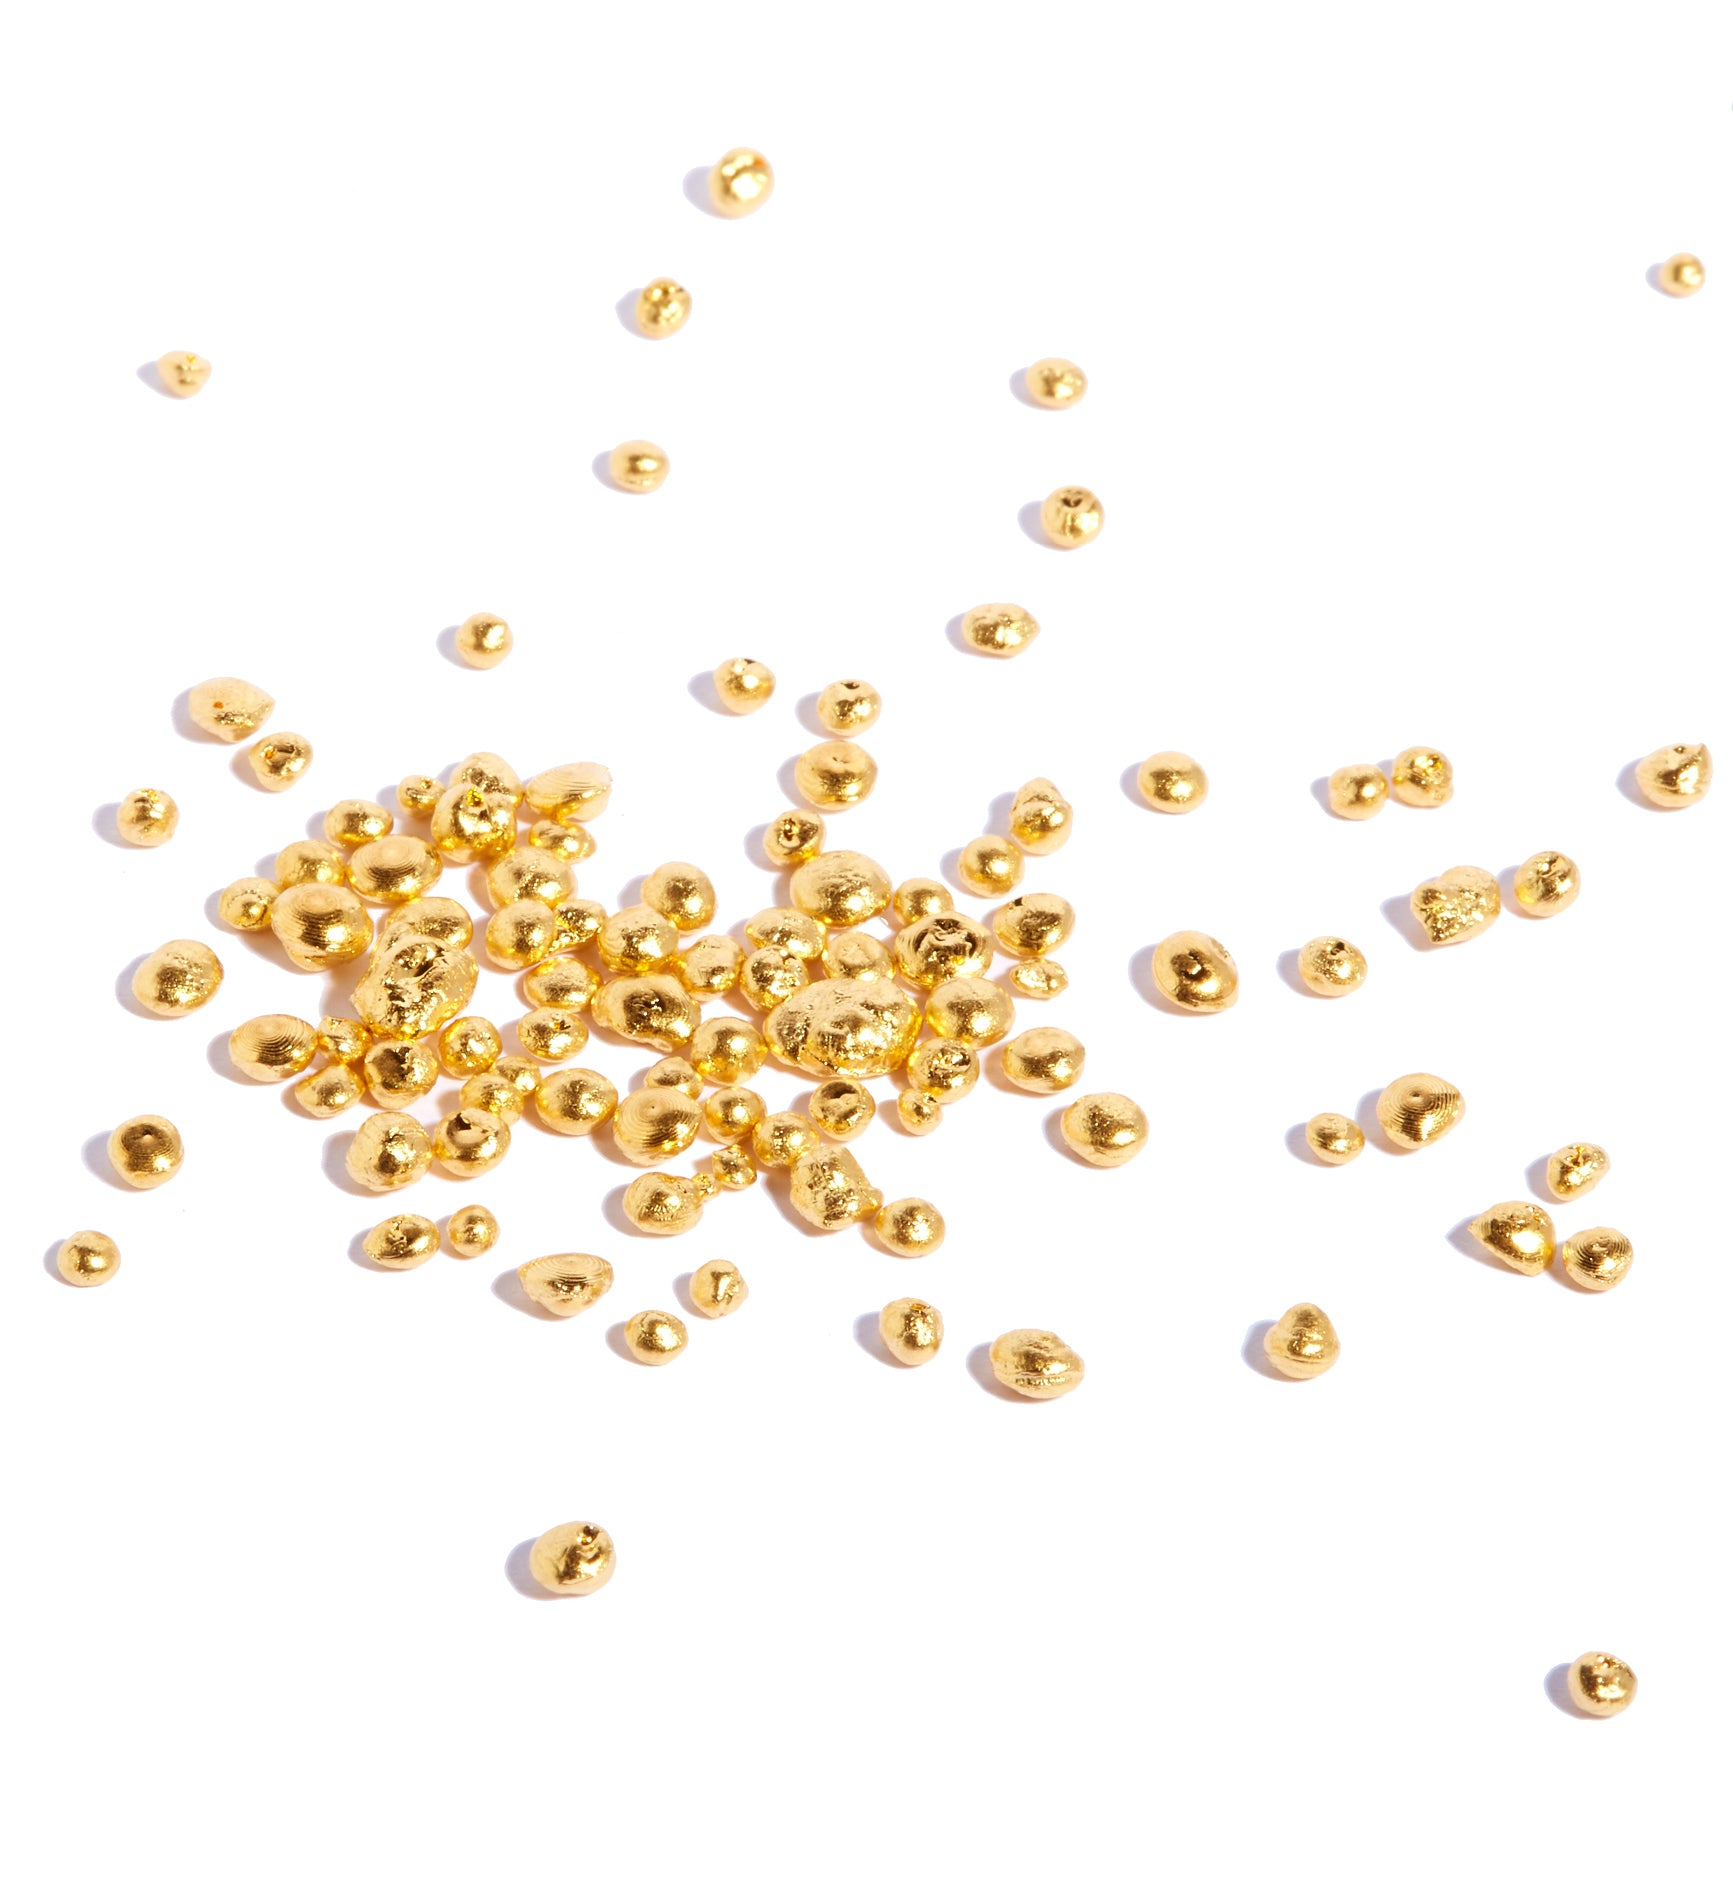 https://cdn.shopify.com/s/files/1/0571/9261/t/15/assets/gold%20granules-1509685146013.jpg?4539461821184262882